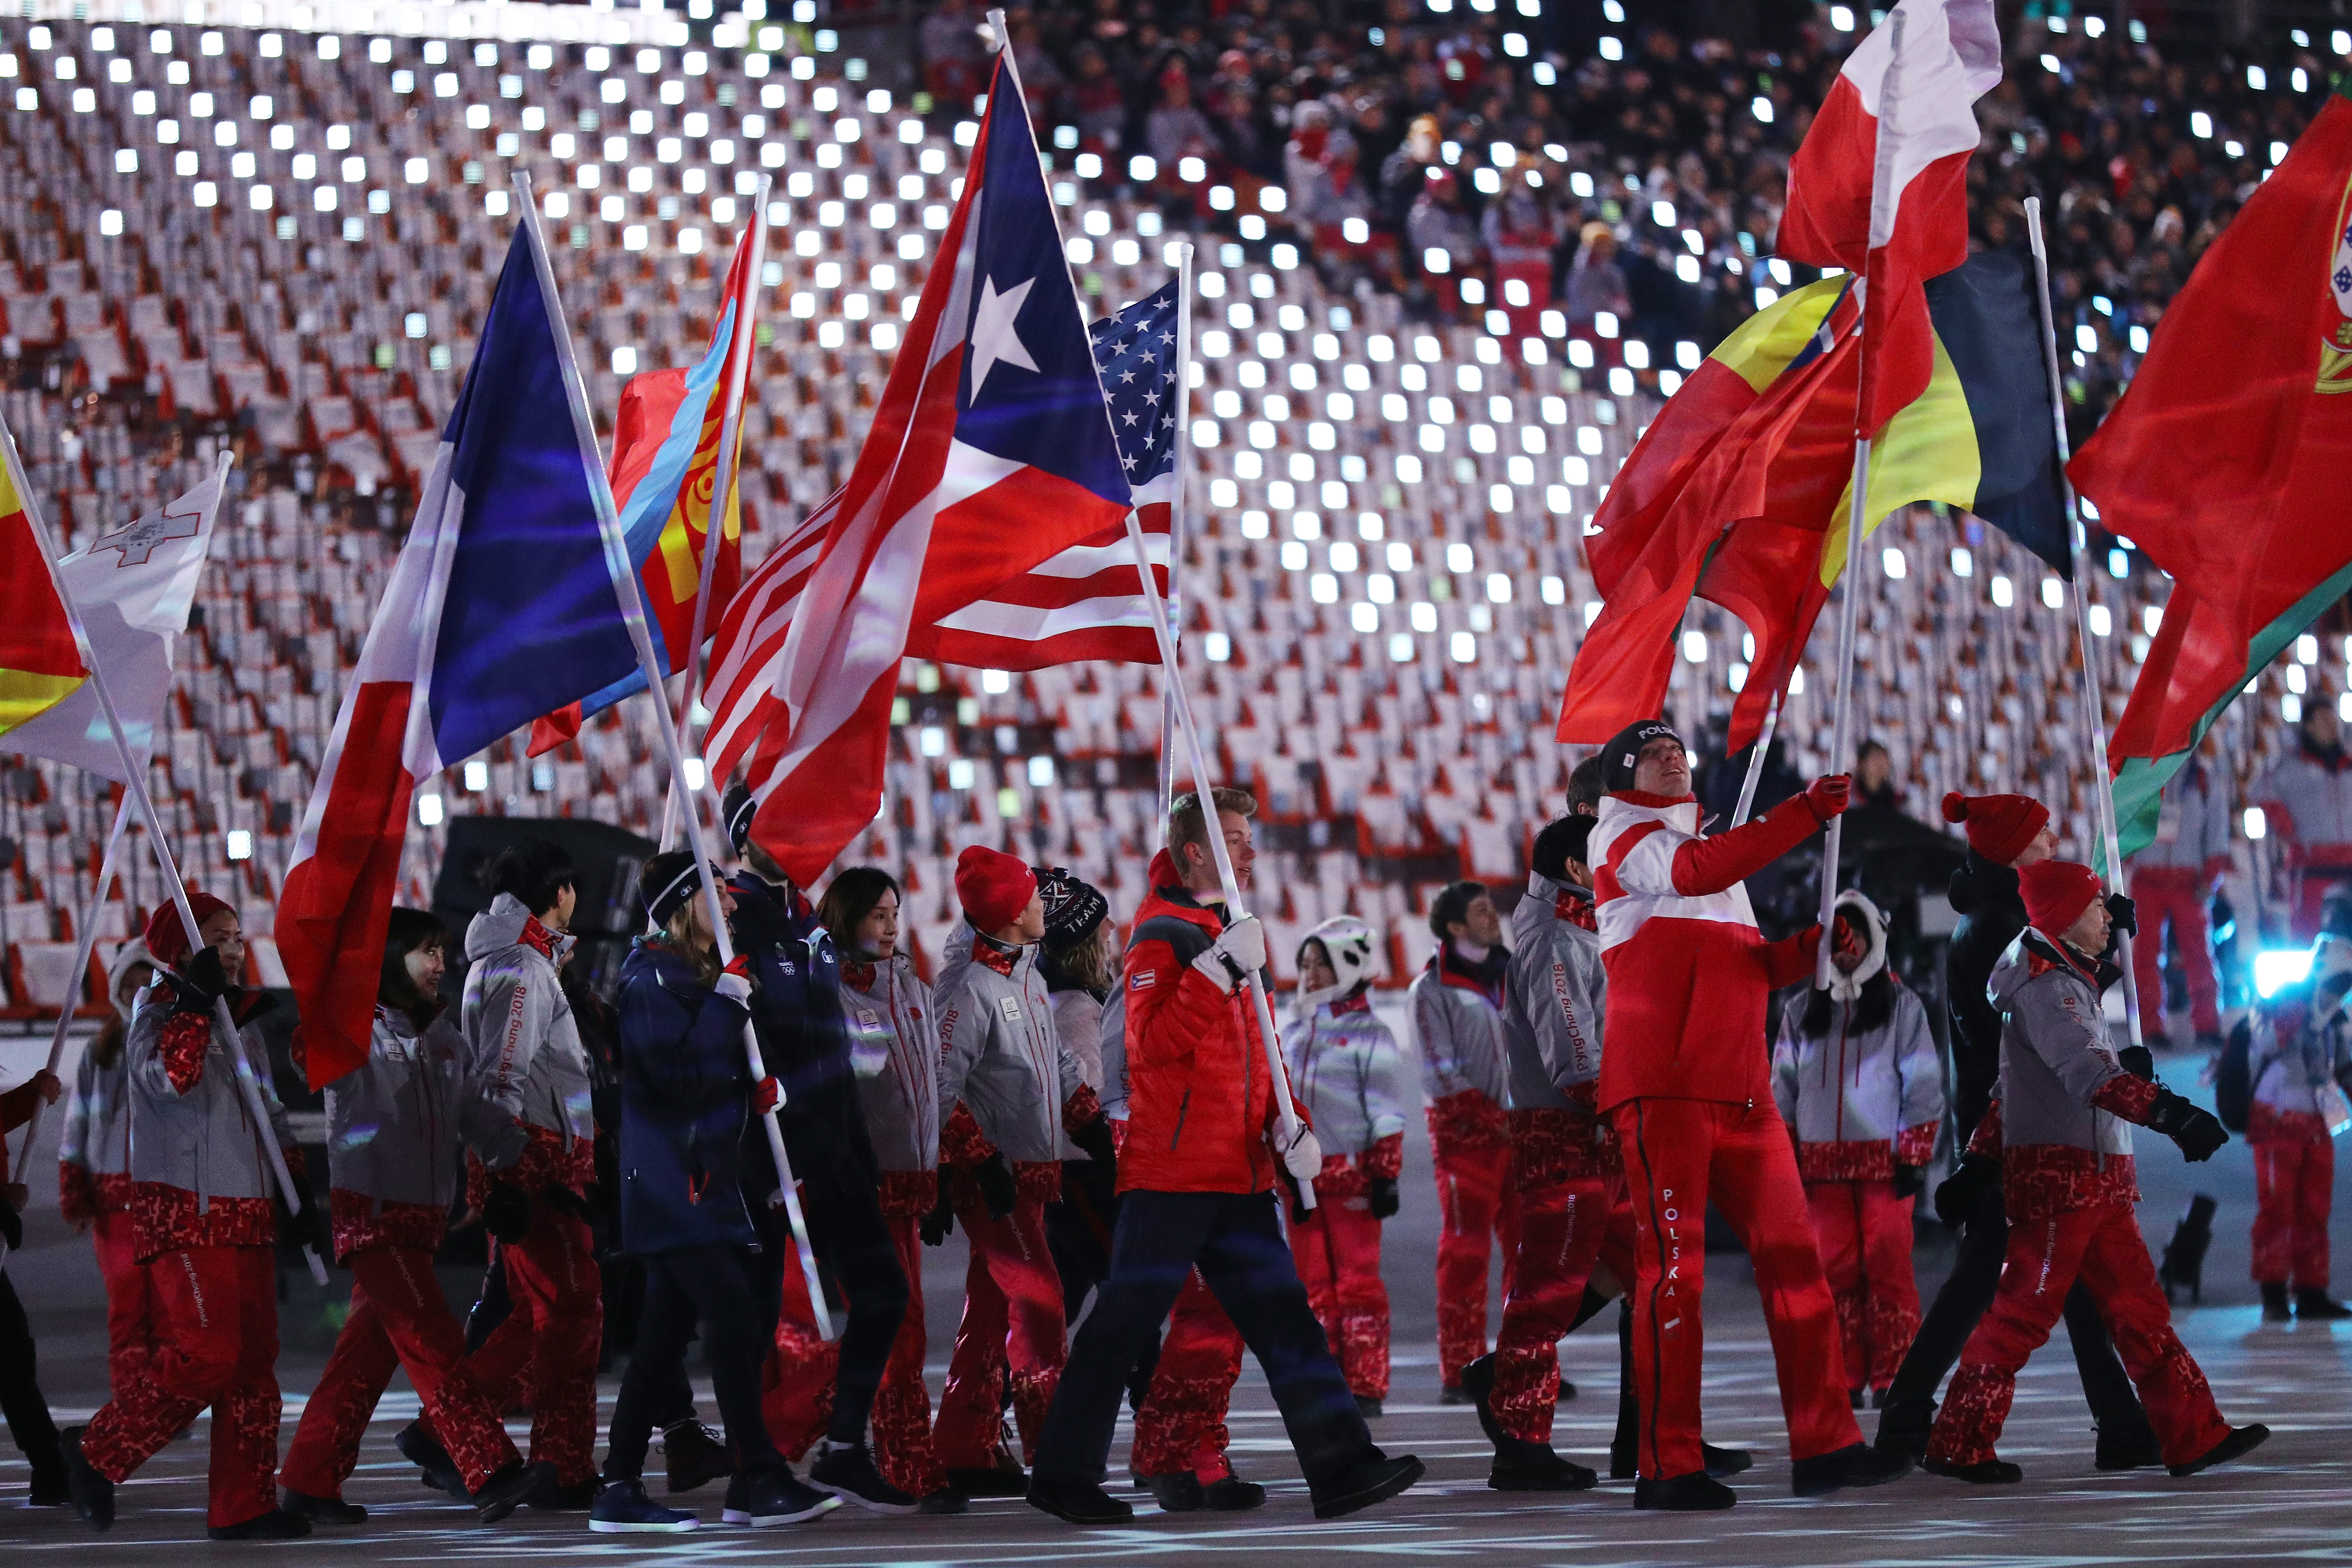 Flag bearer Gabriella Papadakis of France walks in the Parade of Athletes during the Closing Ceremony of the PyeongChang 2018 Winter Olympic Games.